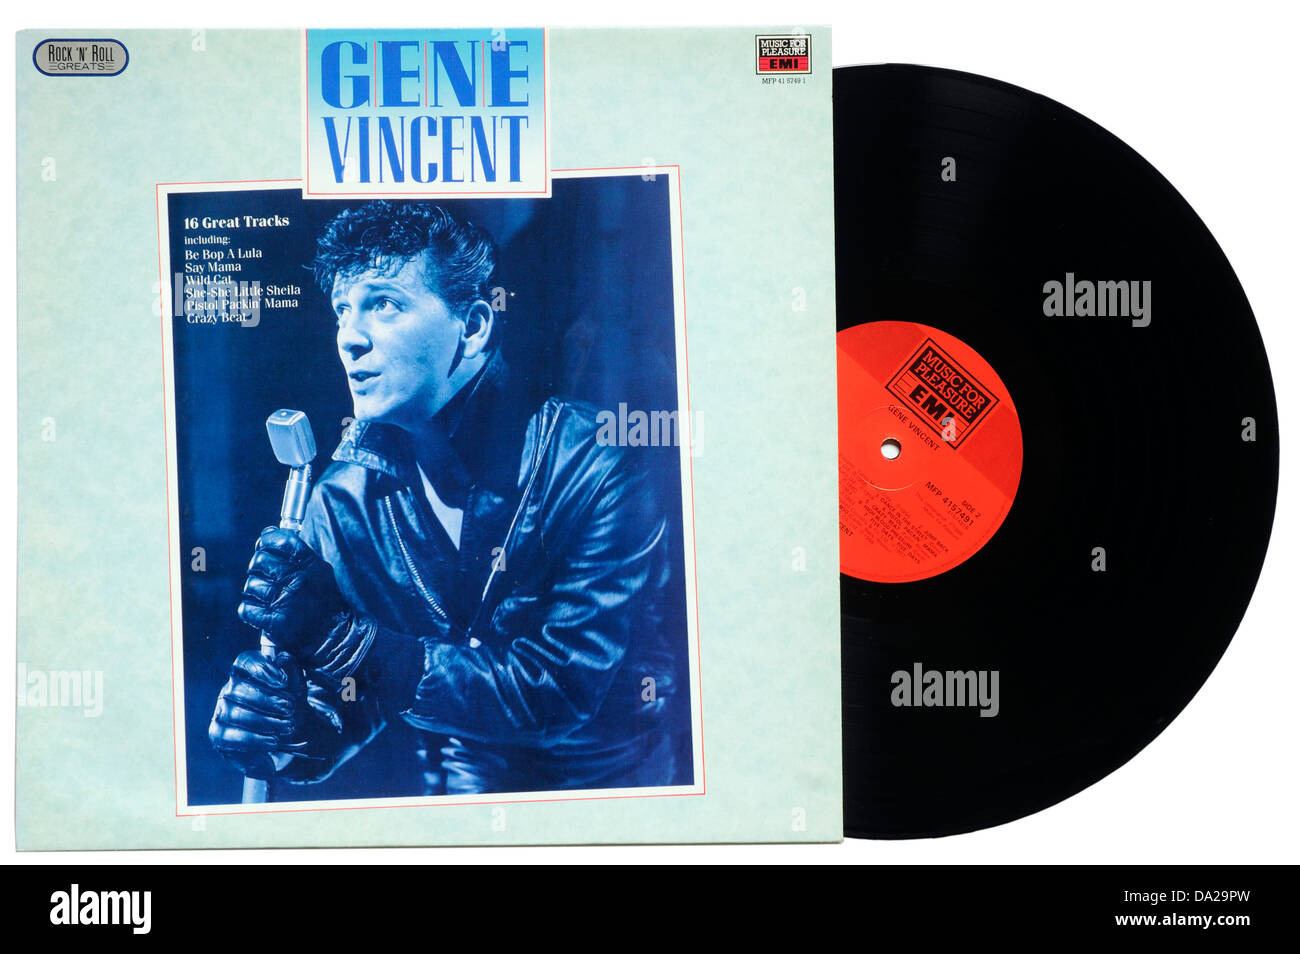 Gene Vincent Greatest Hits album - Stock Image